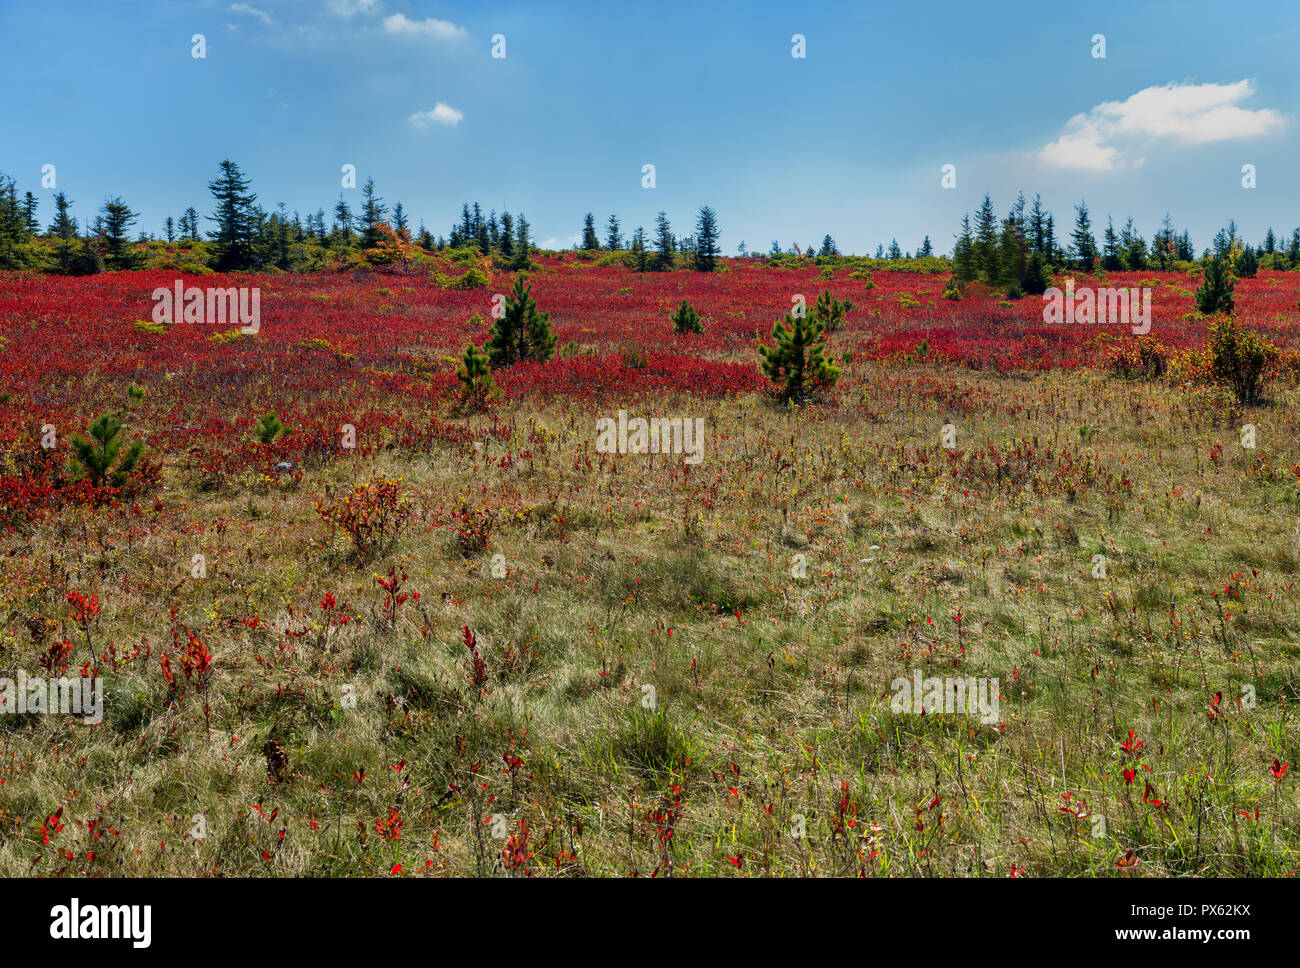 Heath barren at Dolly Sods Wilderness Area in West Virginia in autumn. Flagged red spruce and white pine emerge from the red foliage of blueberry bush - Stock Image